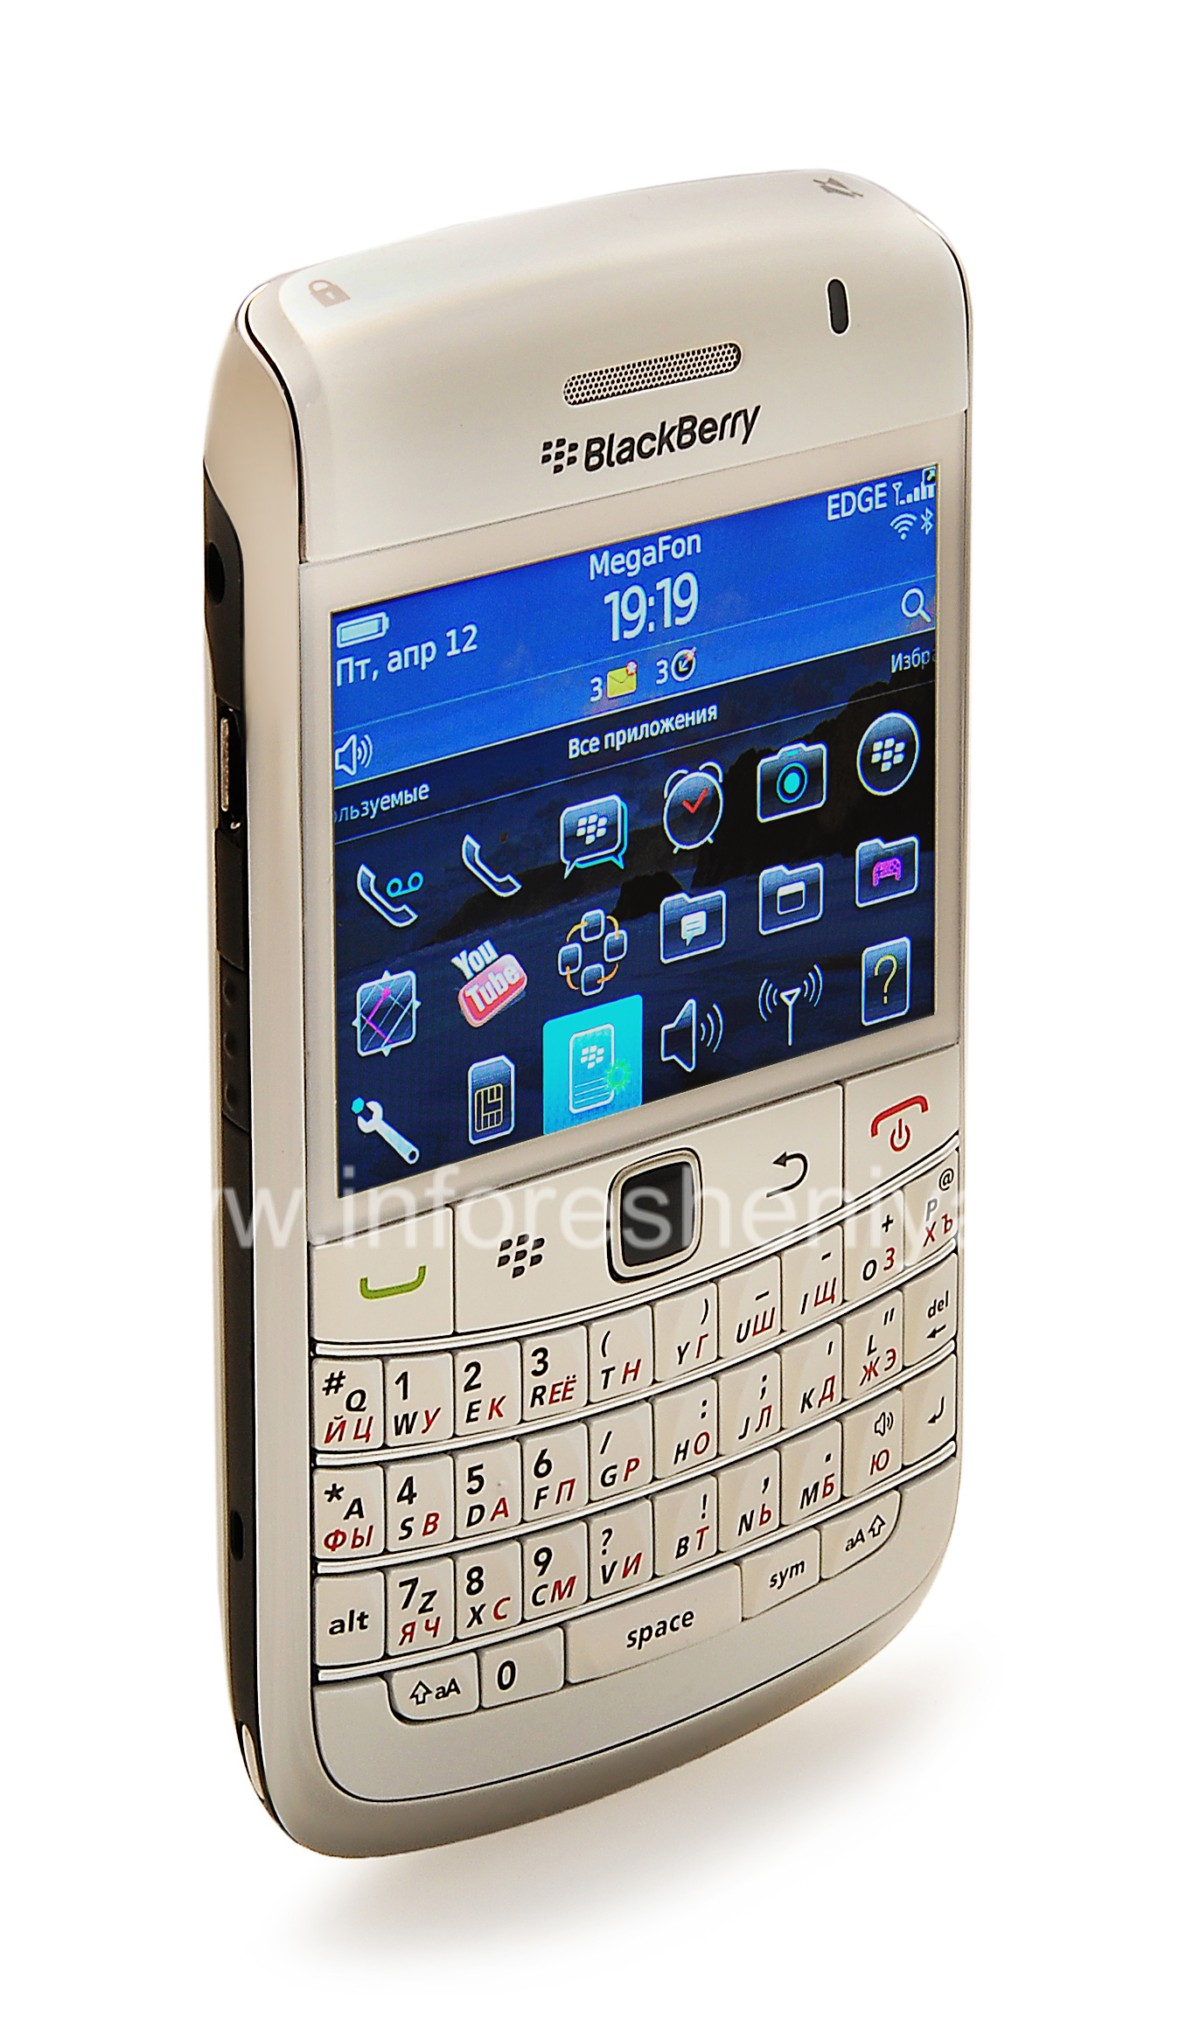 buy smartphone blackberry 9700 bold pearl white. Black Bedroom Furniture Sets. Home Design Ideas